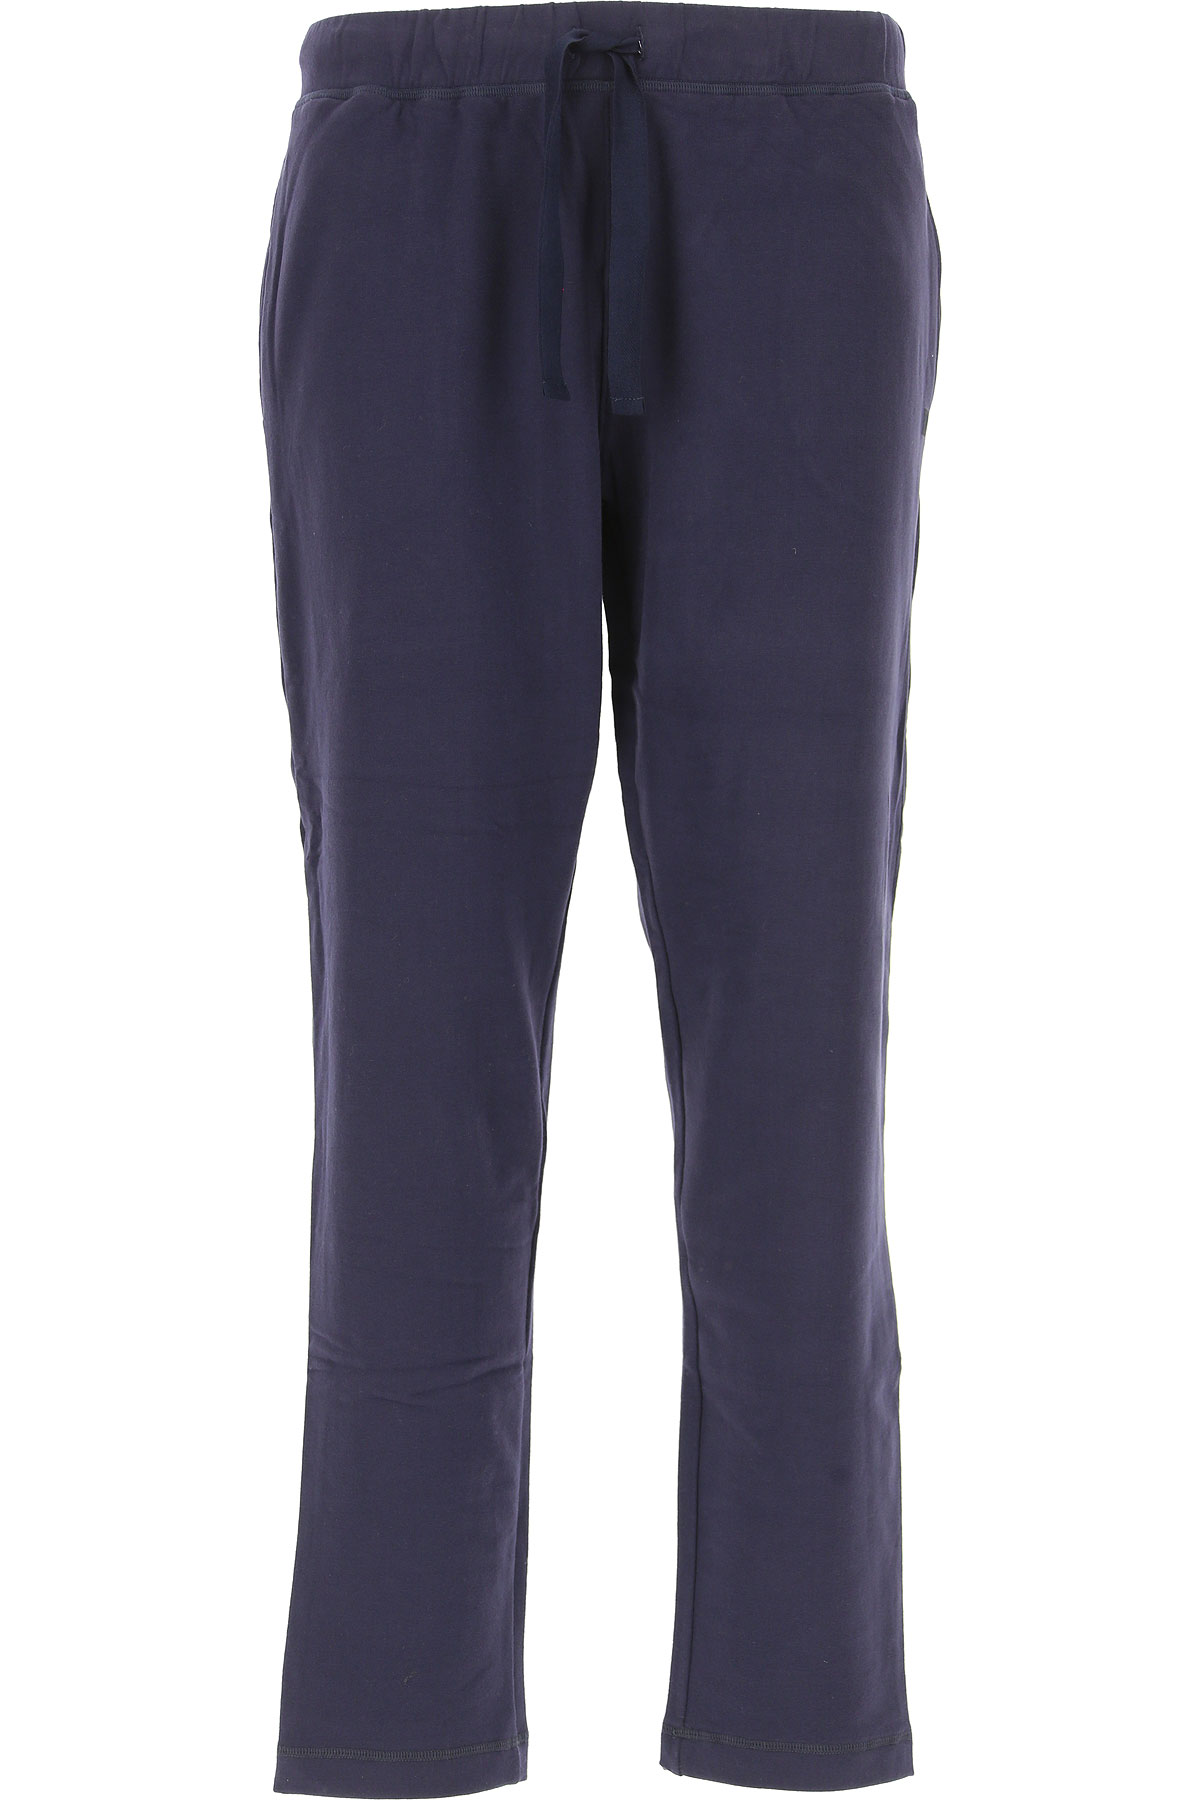 Ermenegildo Zegna Pants for Men On Sale, Blue, Cotton, 2017, L S XXL